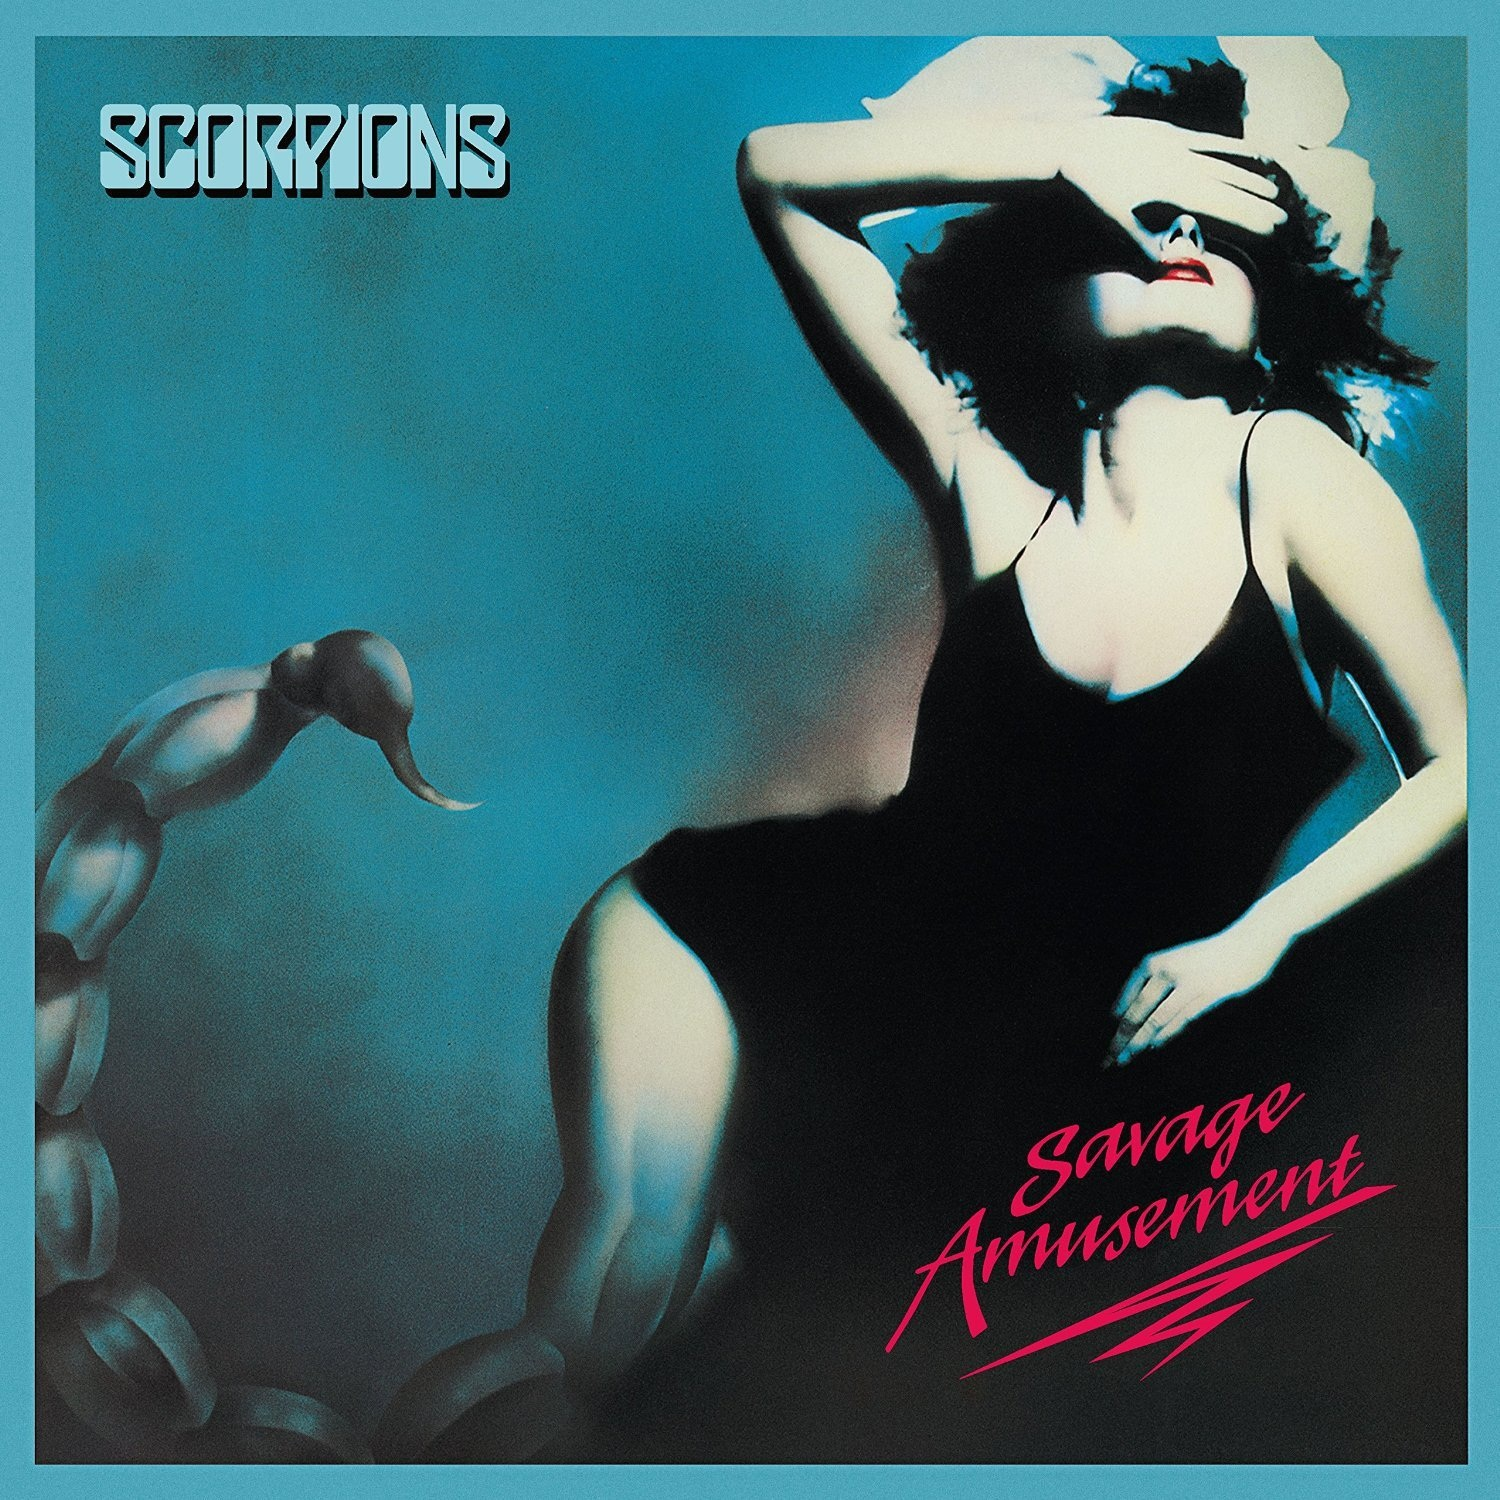 Scorpions. Savage Amusement (LP + CD) купить